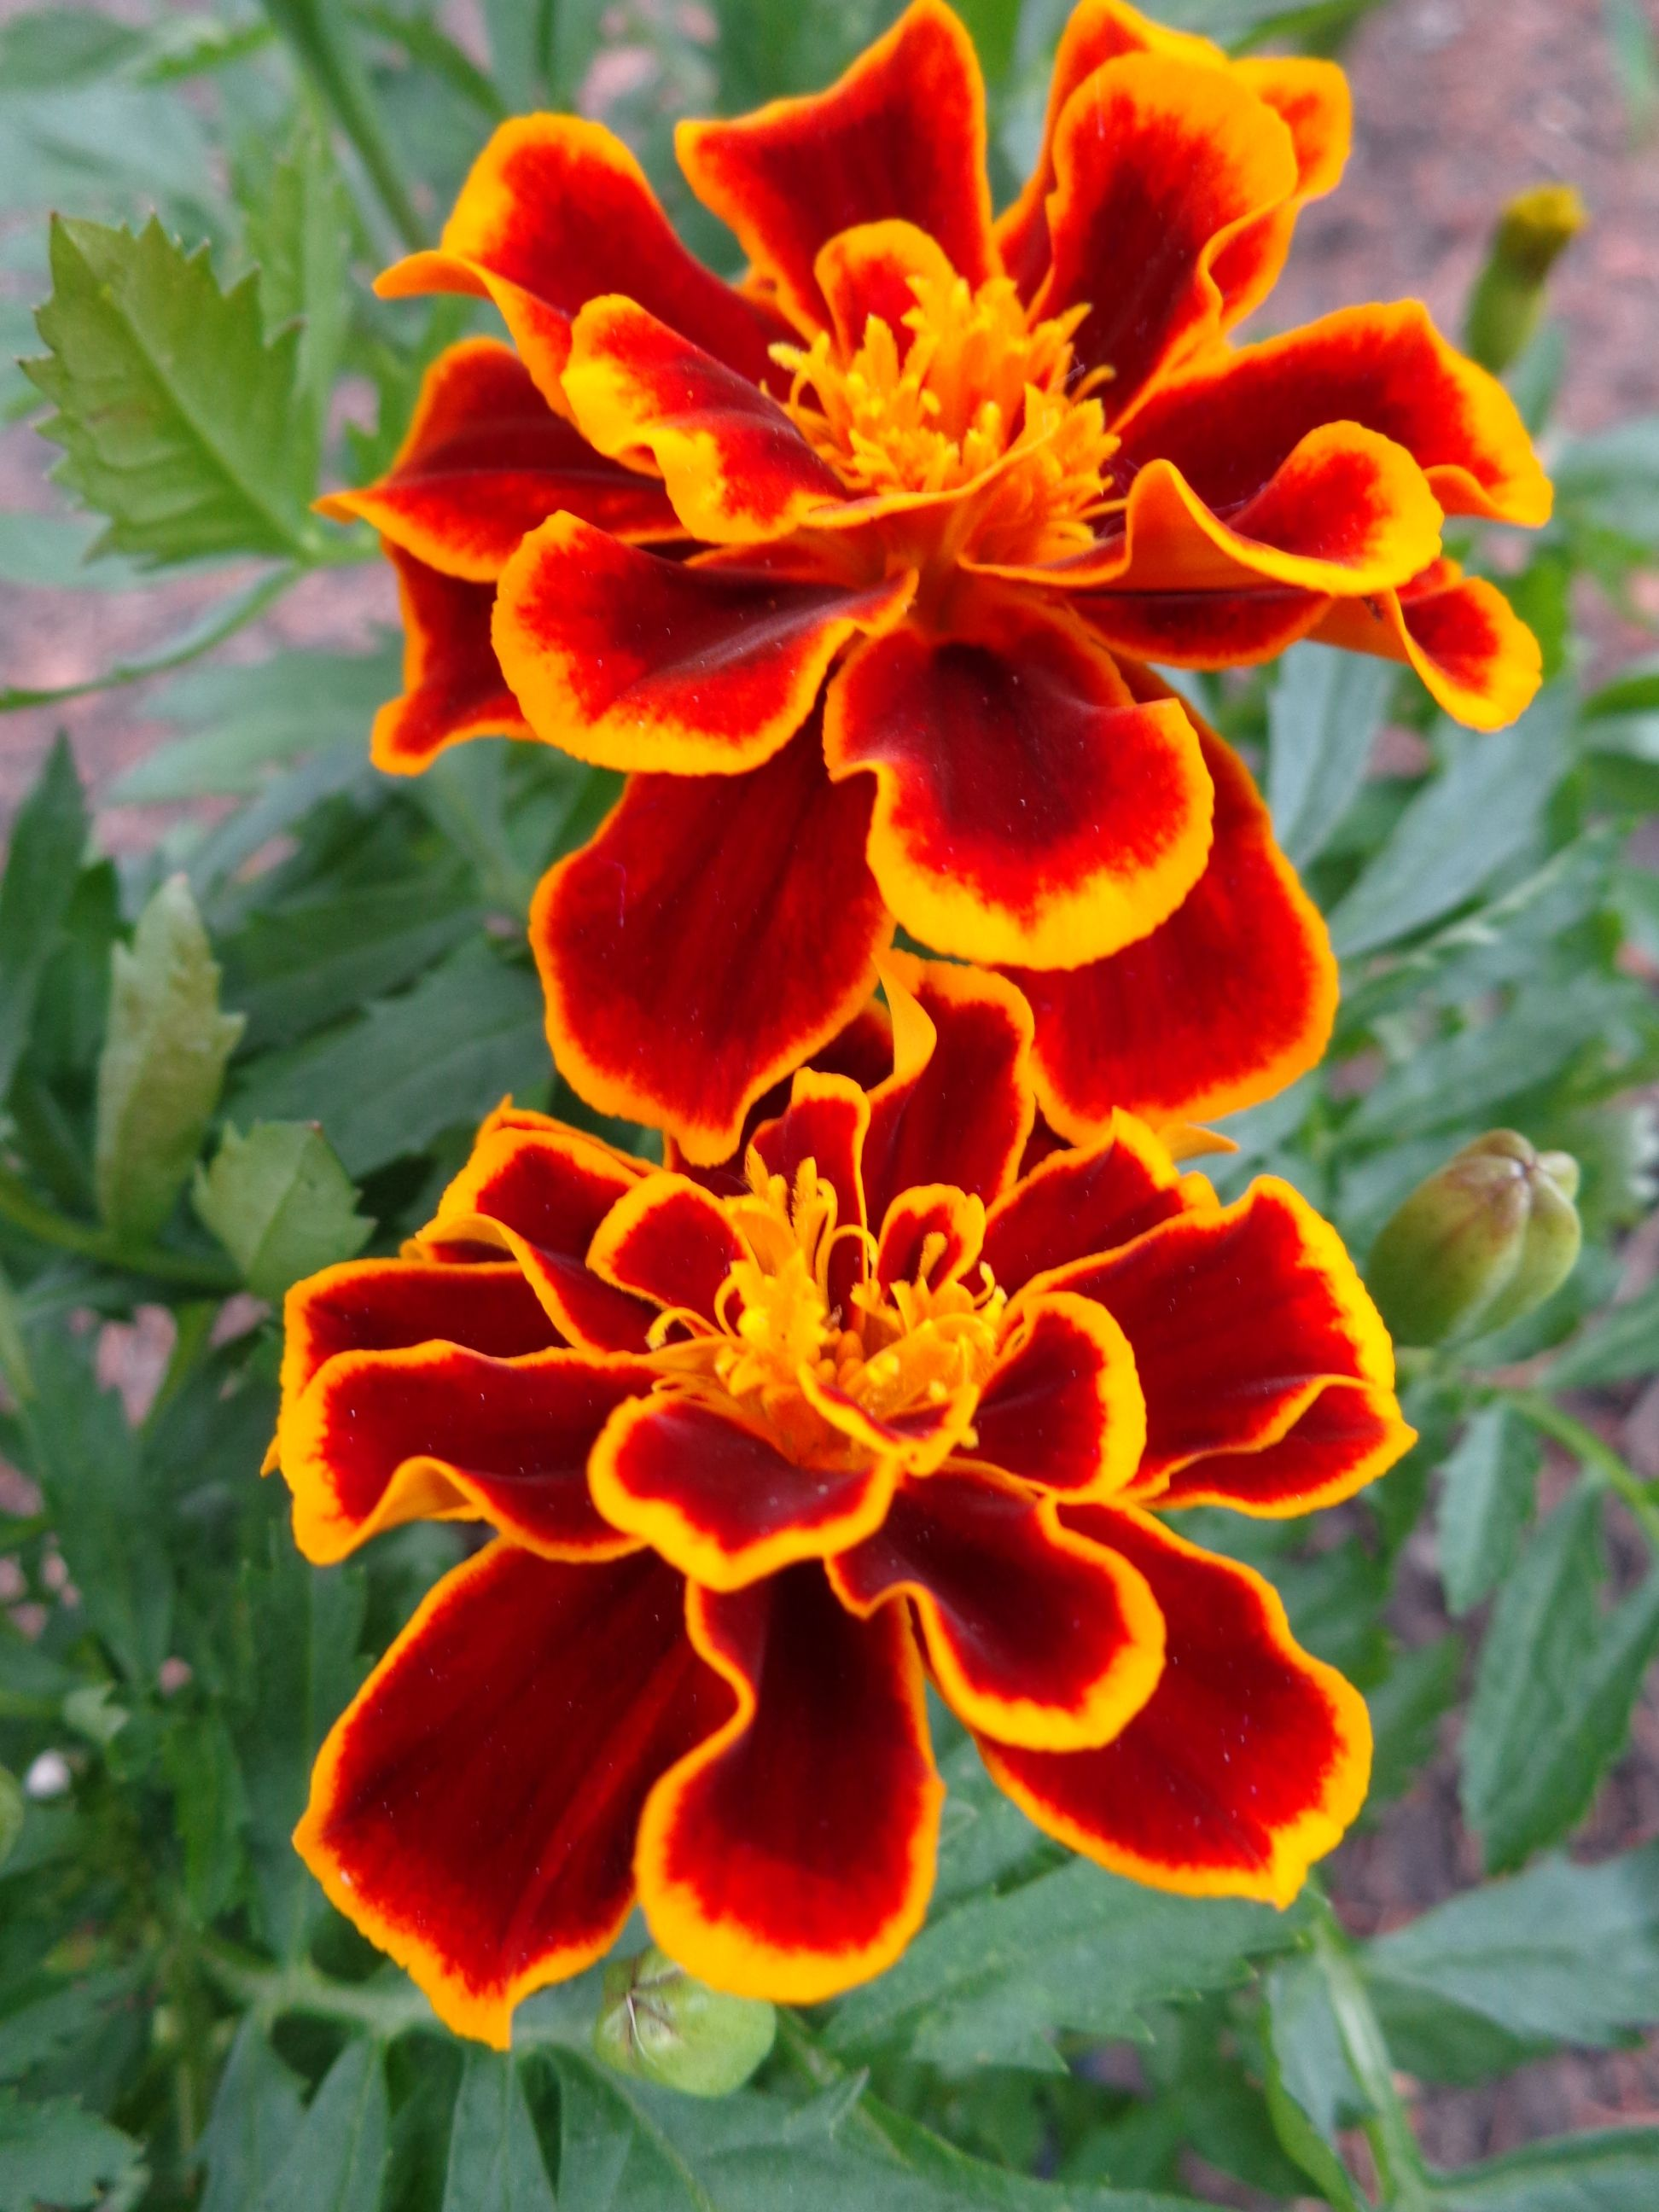 I like the twotoned color in this Marigold flower